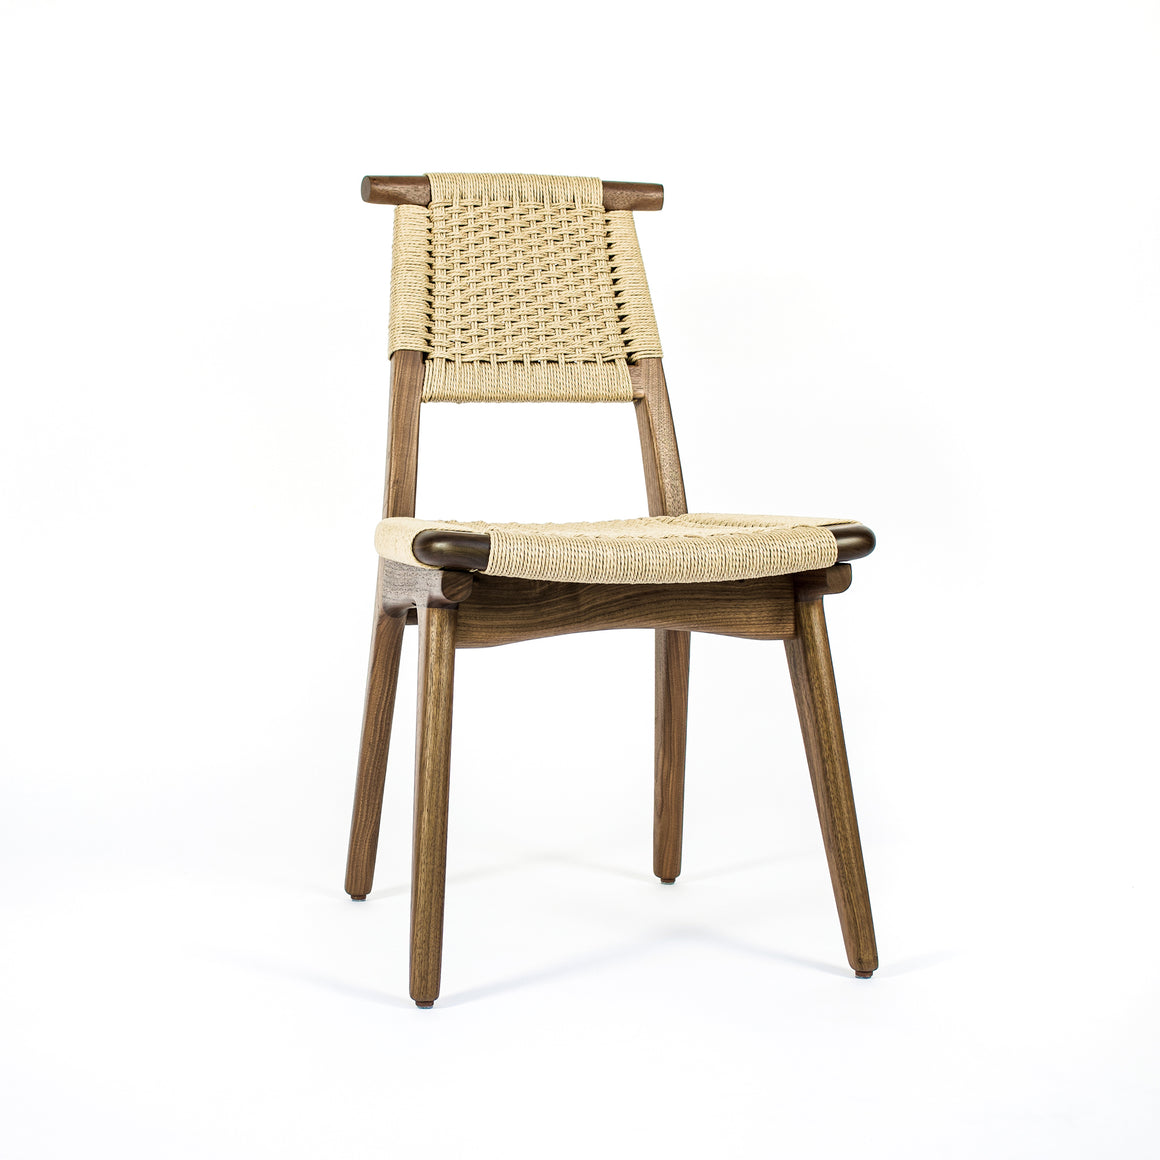 Rian Bullhorn Chair Walnut and Danish Cord Woven Seat Deck